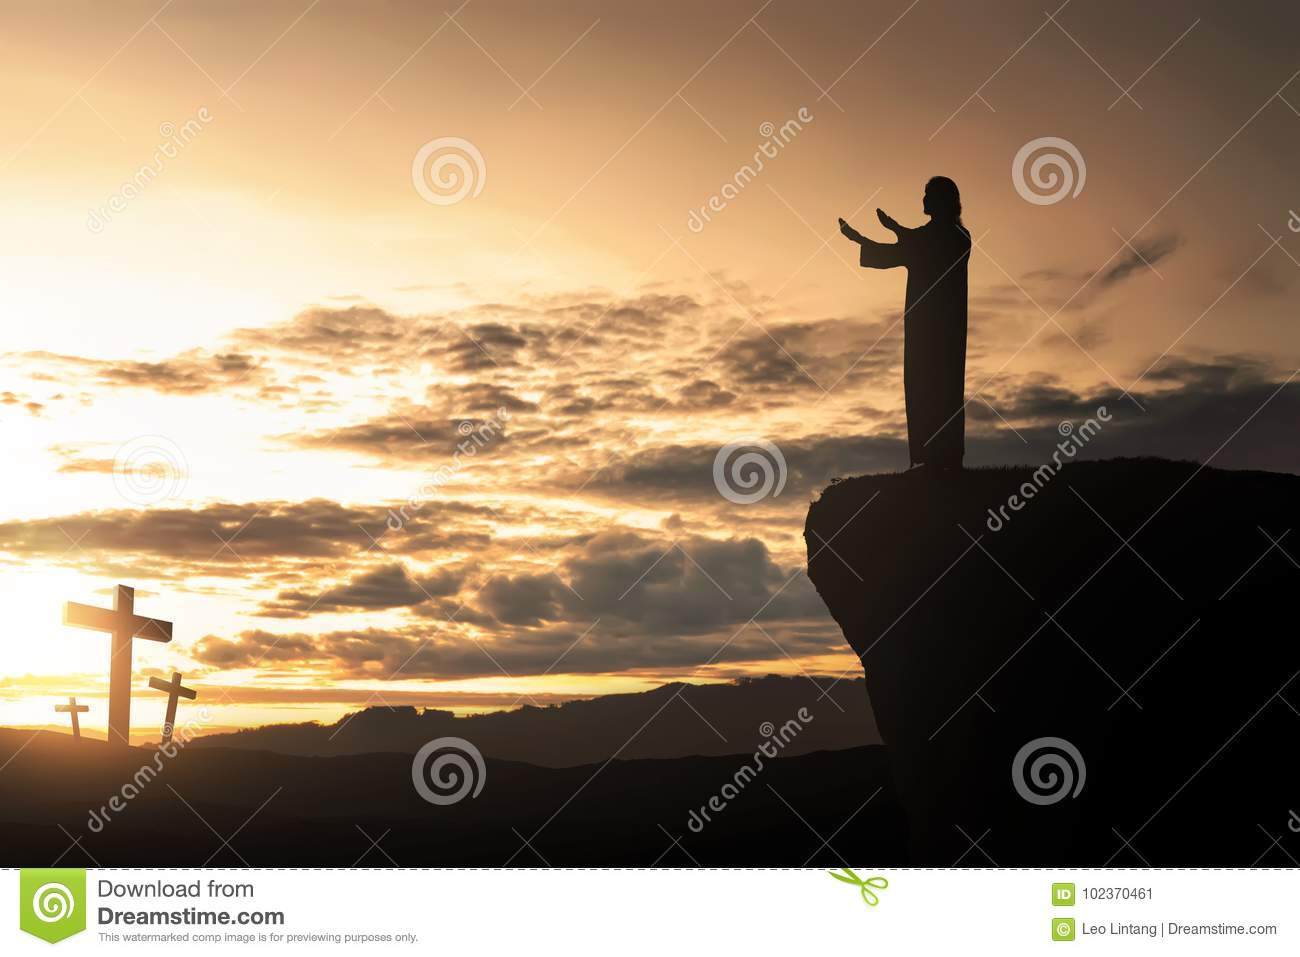 Silhouette of man facing the cross and praying